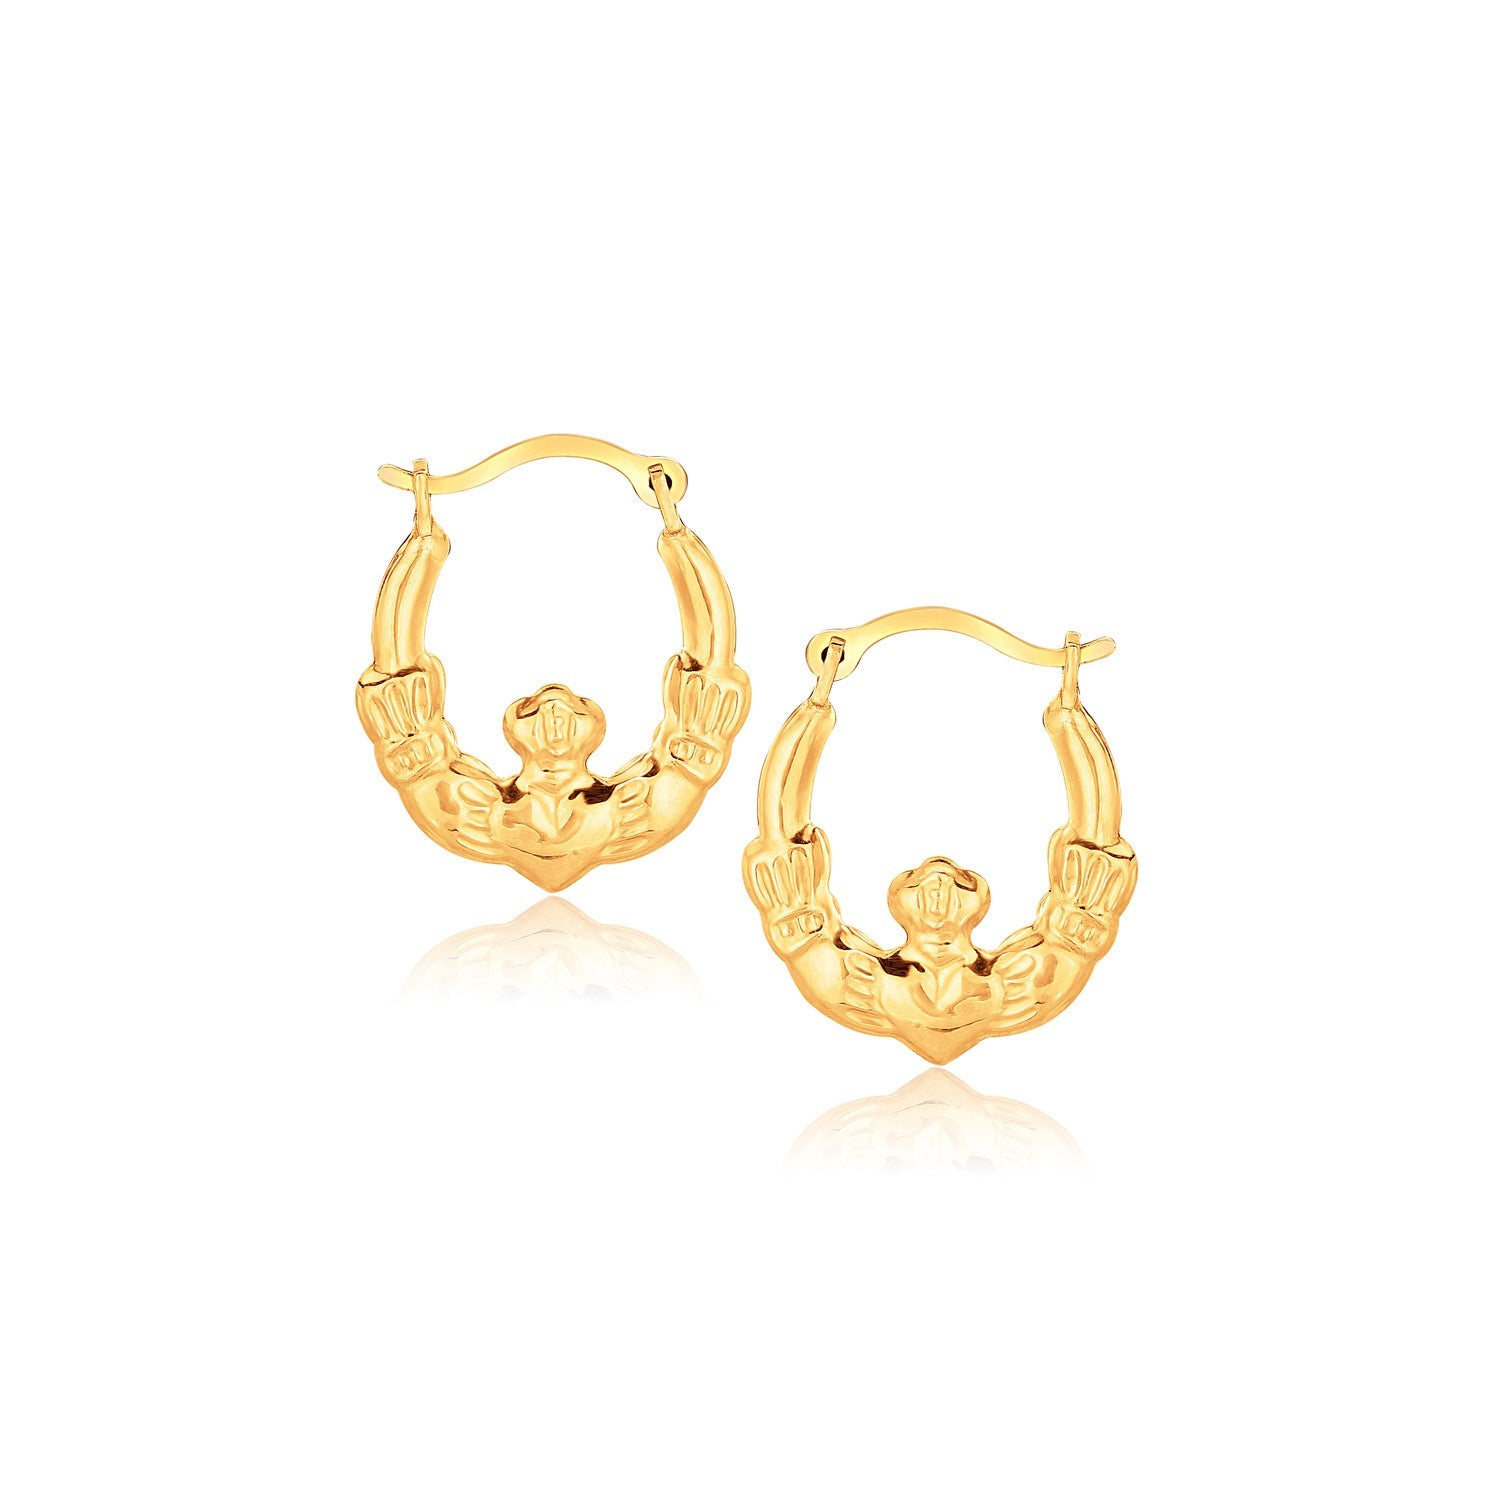 10K Yellow Gold Claddagh Hoop Earrings